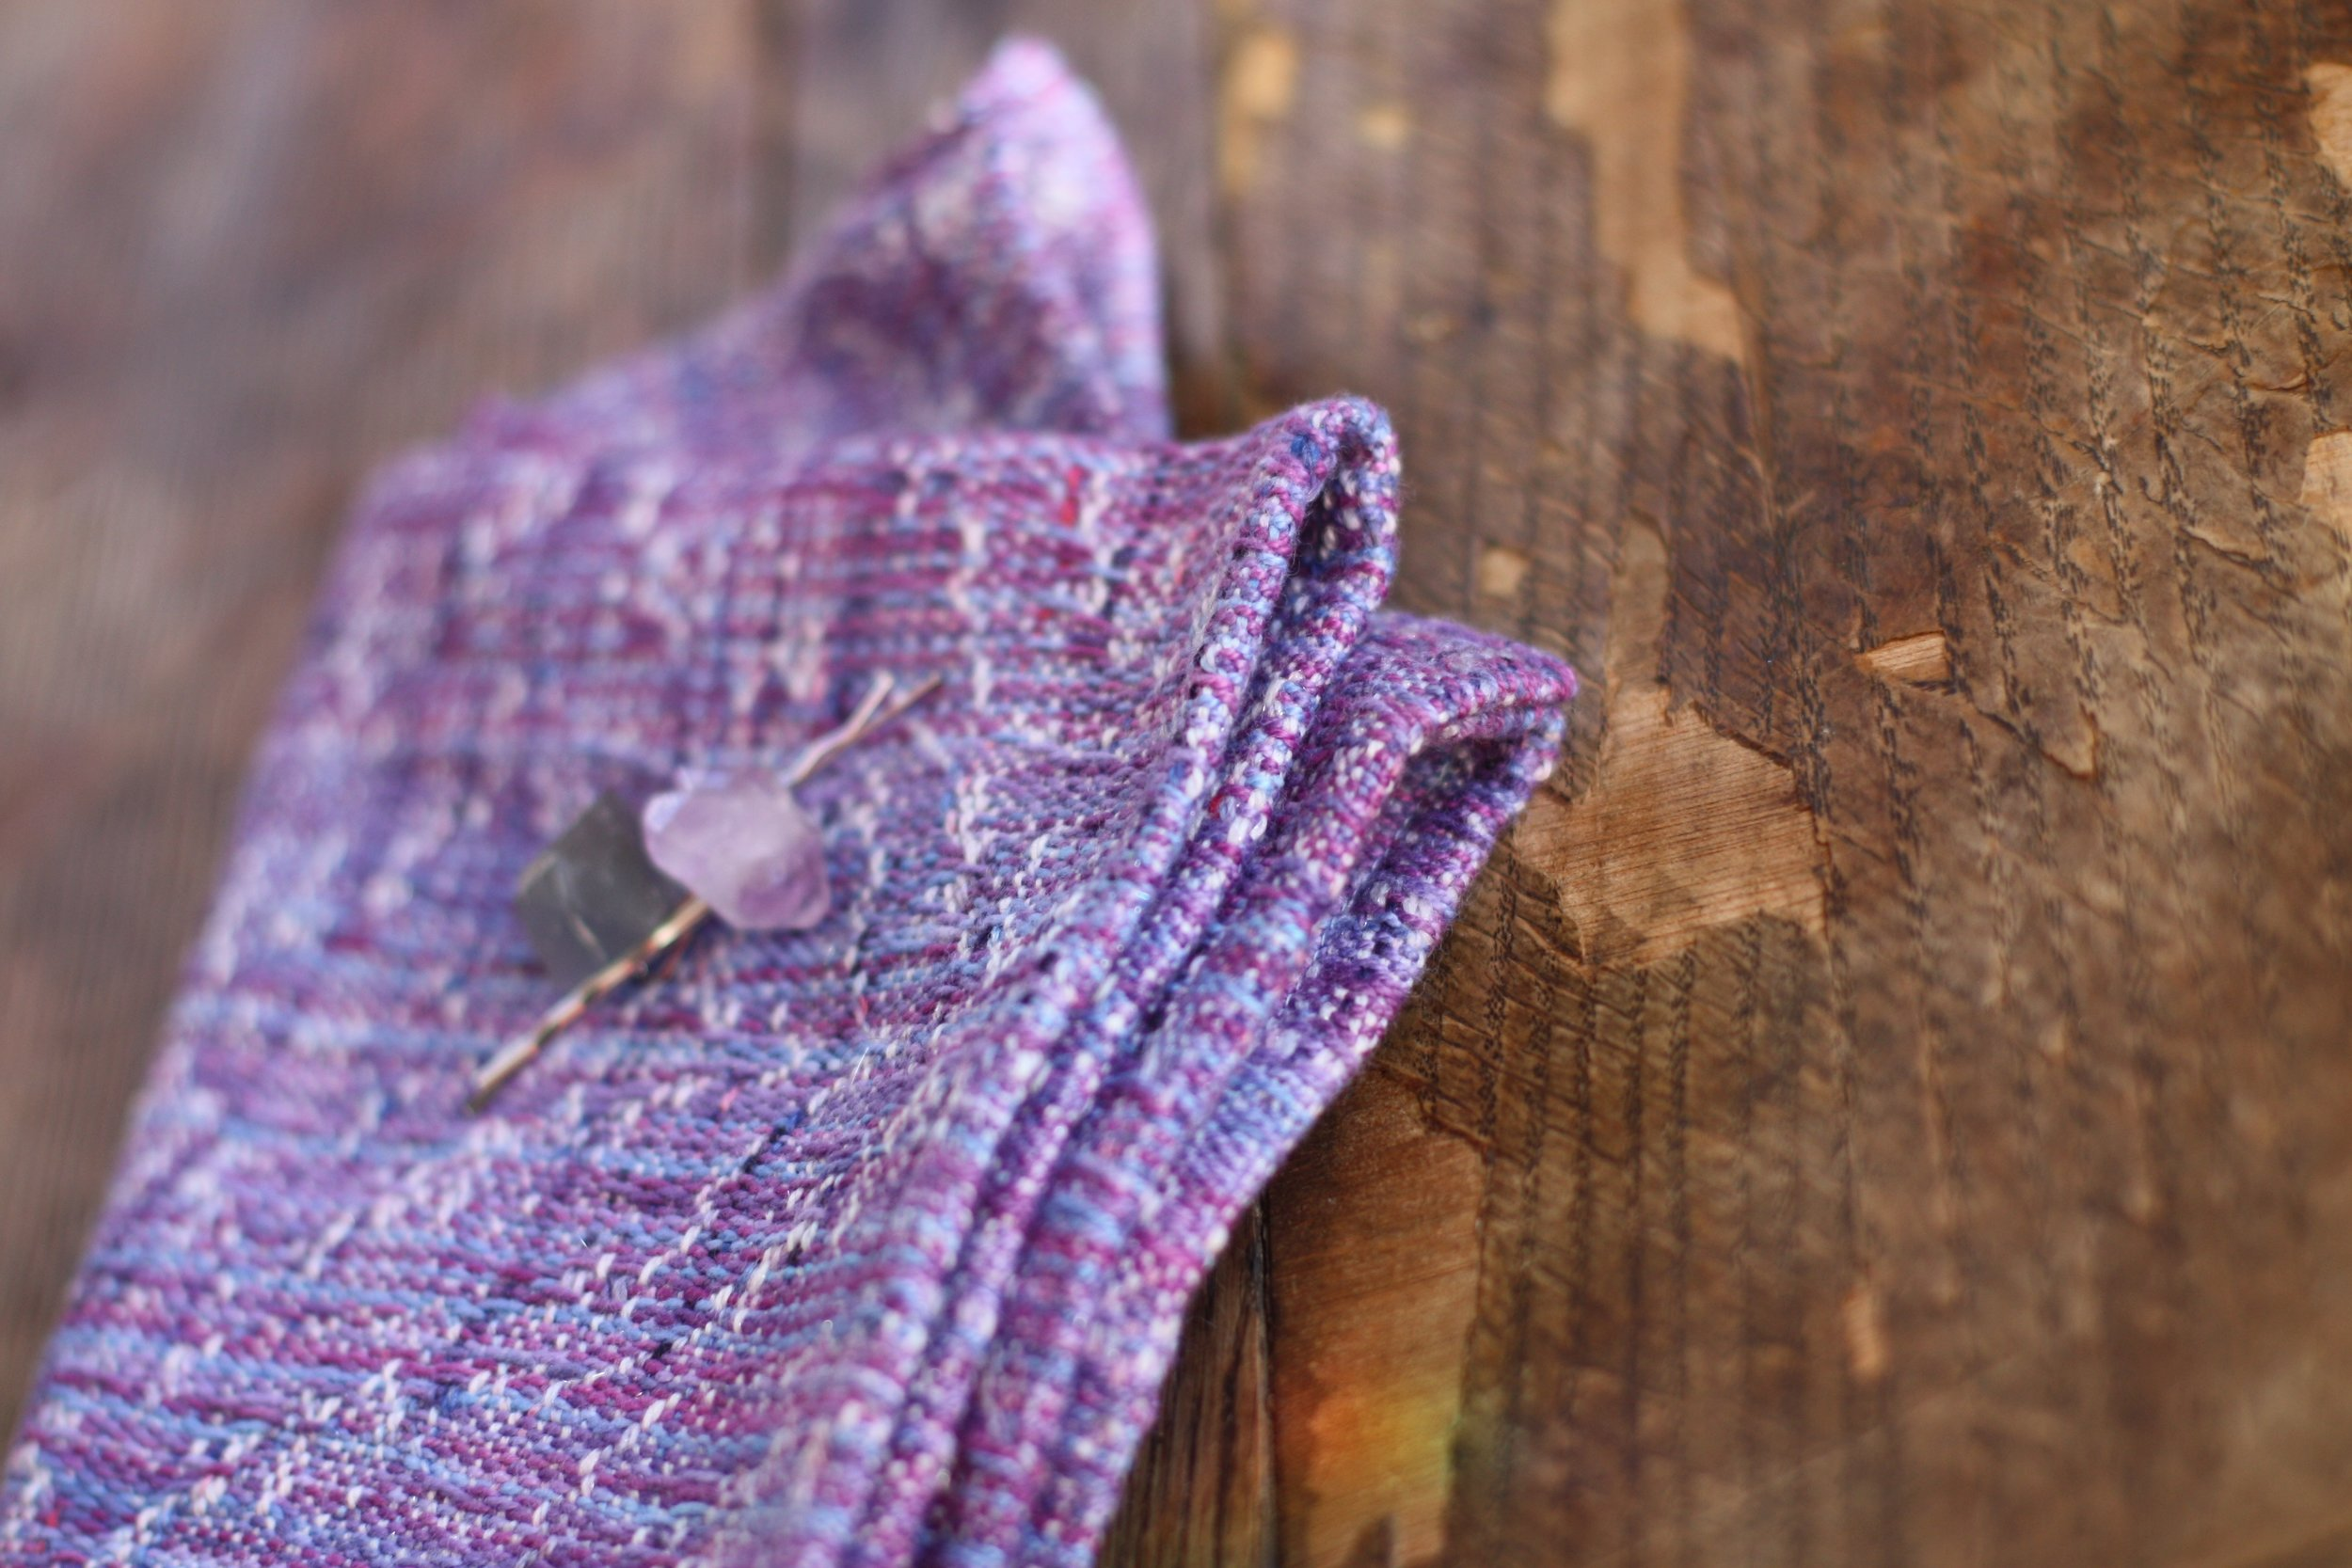 Handwoven neckwear from the Sugar Plum Fairy warp | 14 Mile Farm Handweaving and Homesteading in Alaska